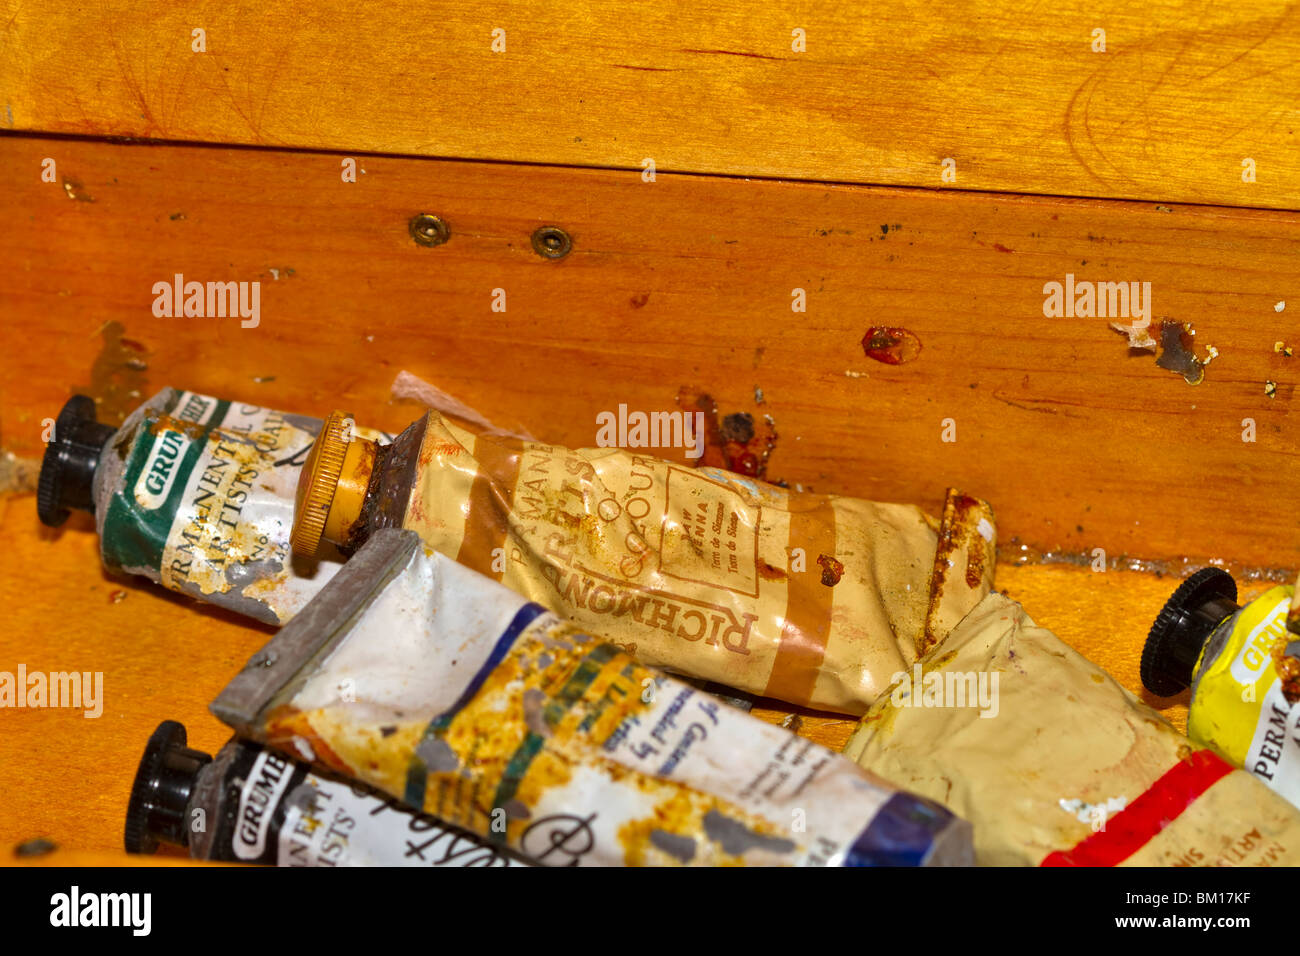 Old tubes of oil paint in a wooden box - Stock Image